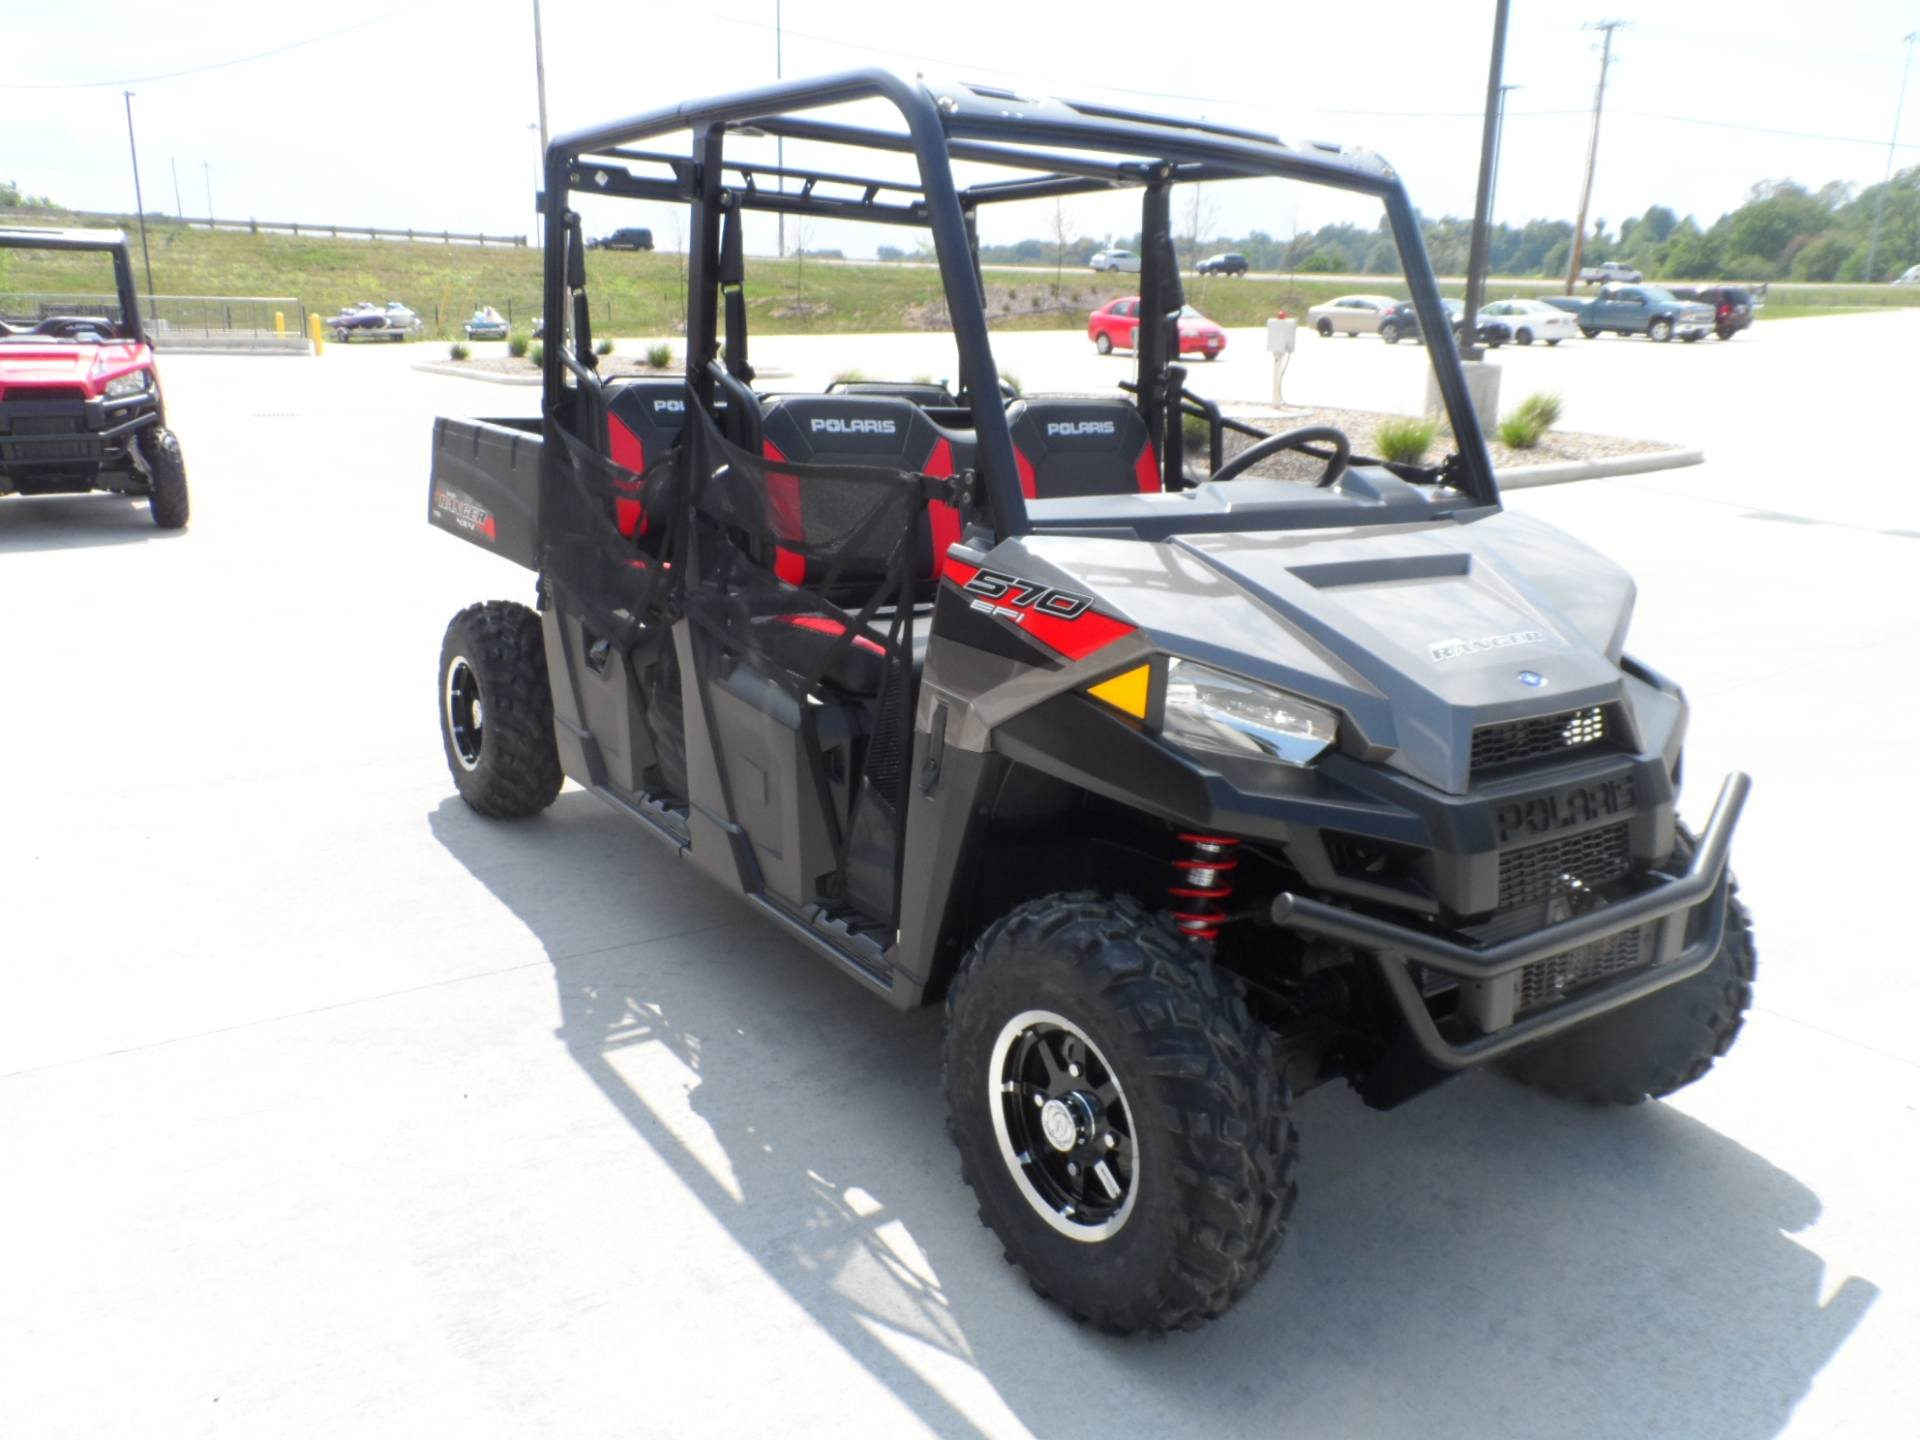 2017 polaris ranger crew 570 4 eps utility vehicles north. Black Bedroom Furniture Sets. Home Design Ideas